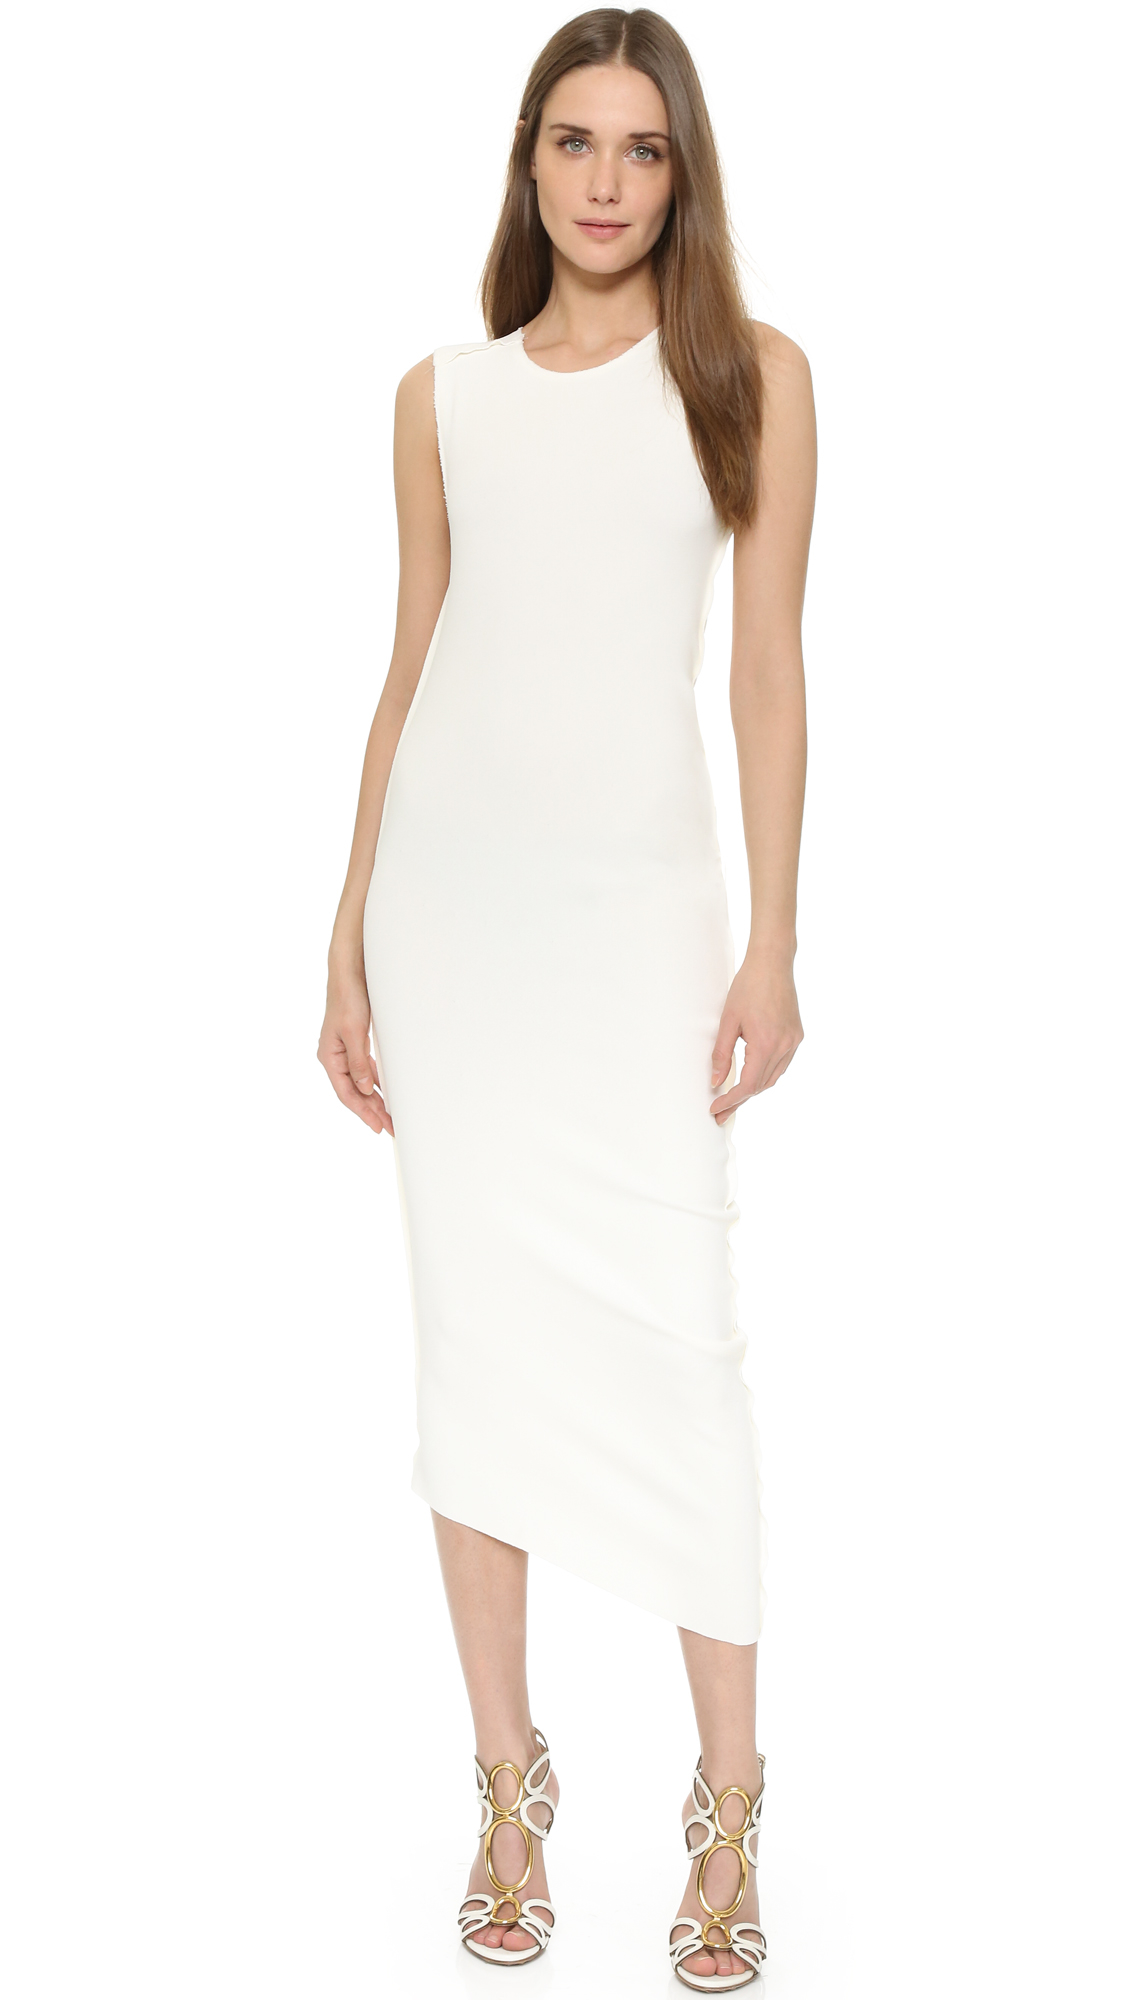 Donna karan Asymmetrical Sheath Dress in White | Lyst